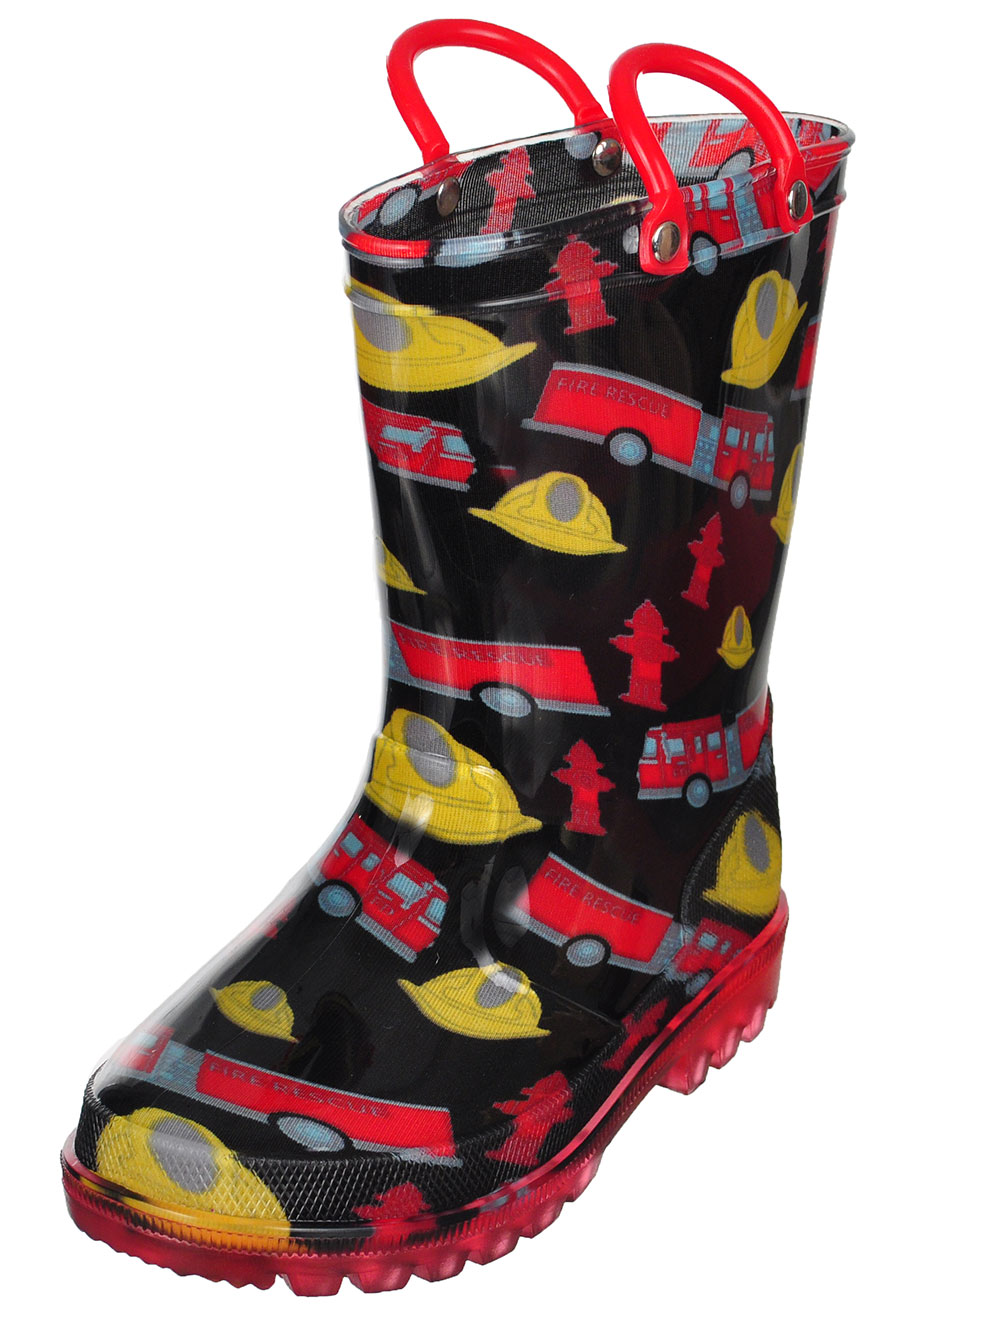 Rainboots Rubber Upper